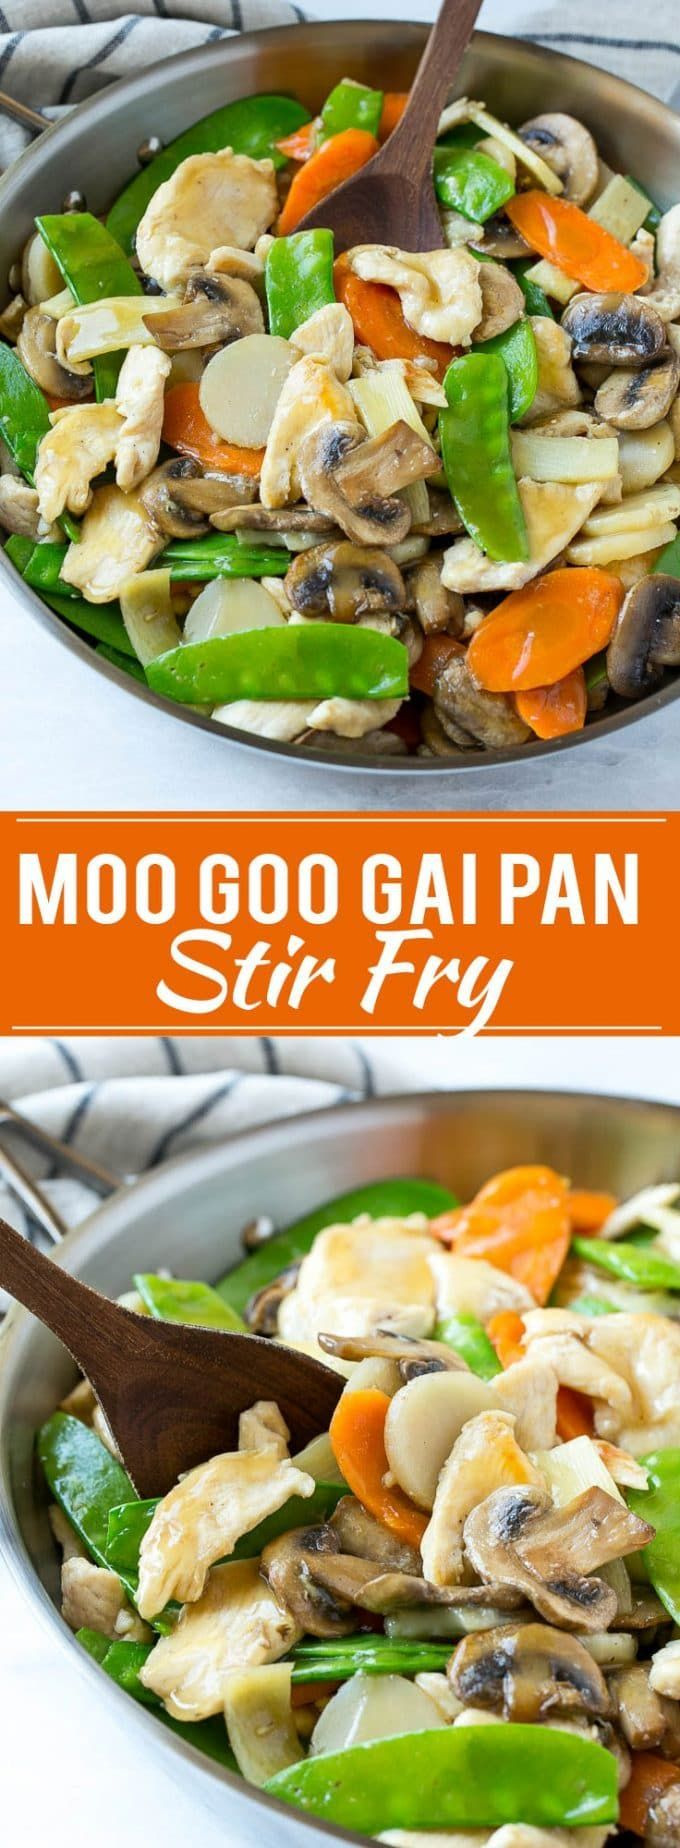 4612 best chinese food recipes images on pinterest chinese recipes moo goo gai pan recipe chicken stir fry chicken and mushroom stir forumfinder Images